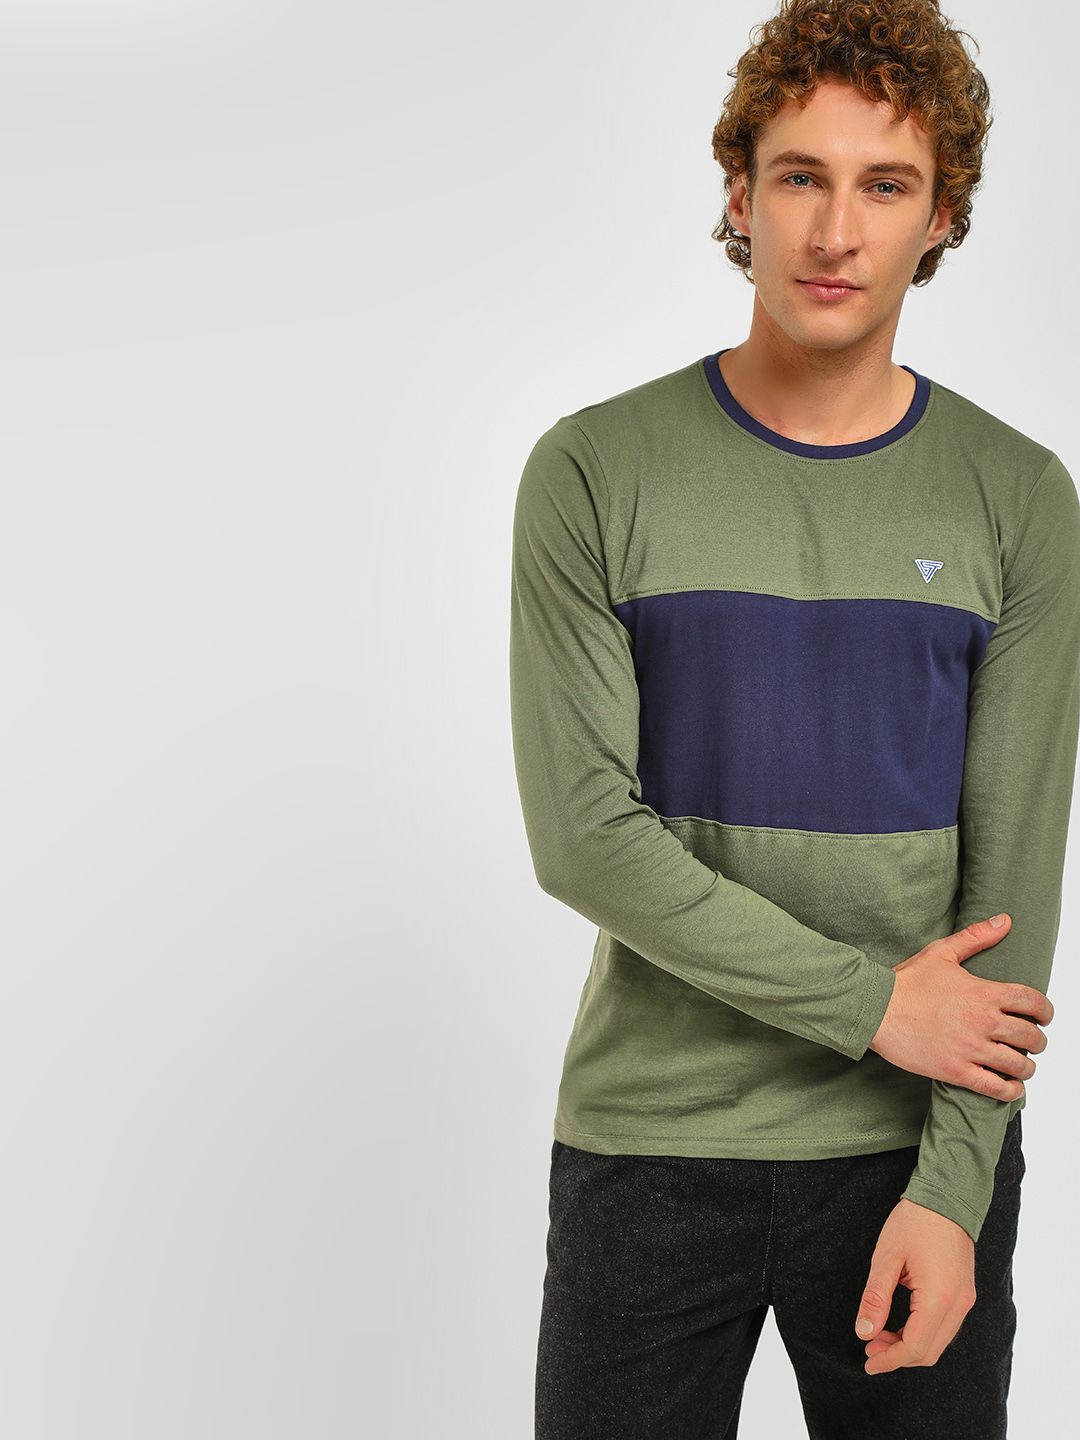 Blue Saint Green Colour Block T-Shirt 1